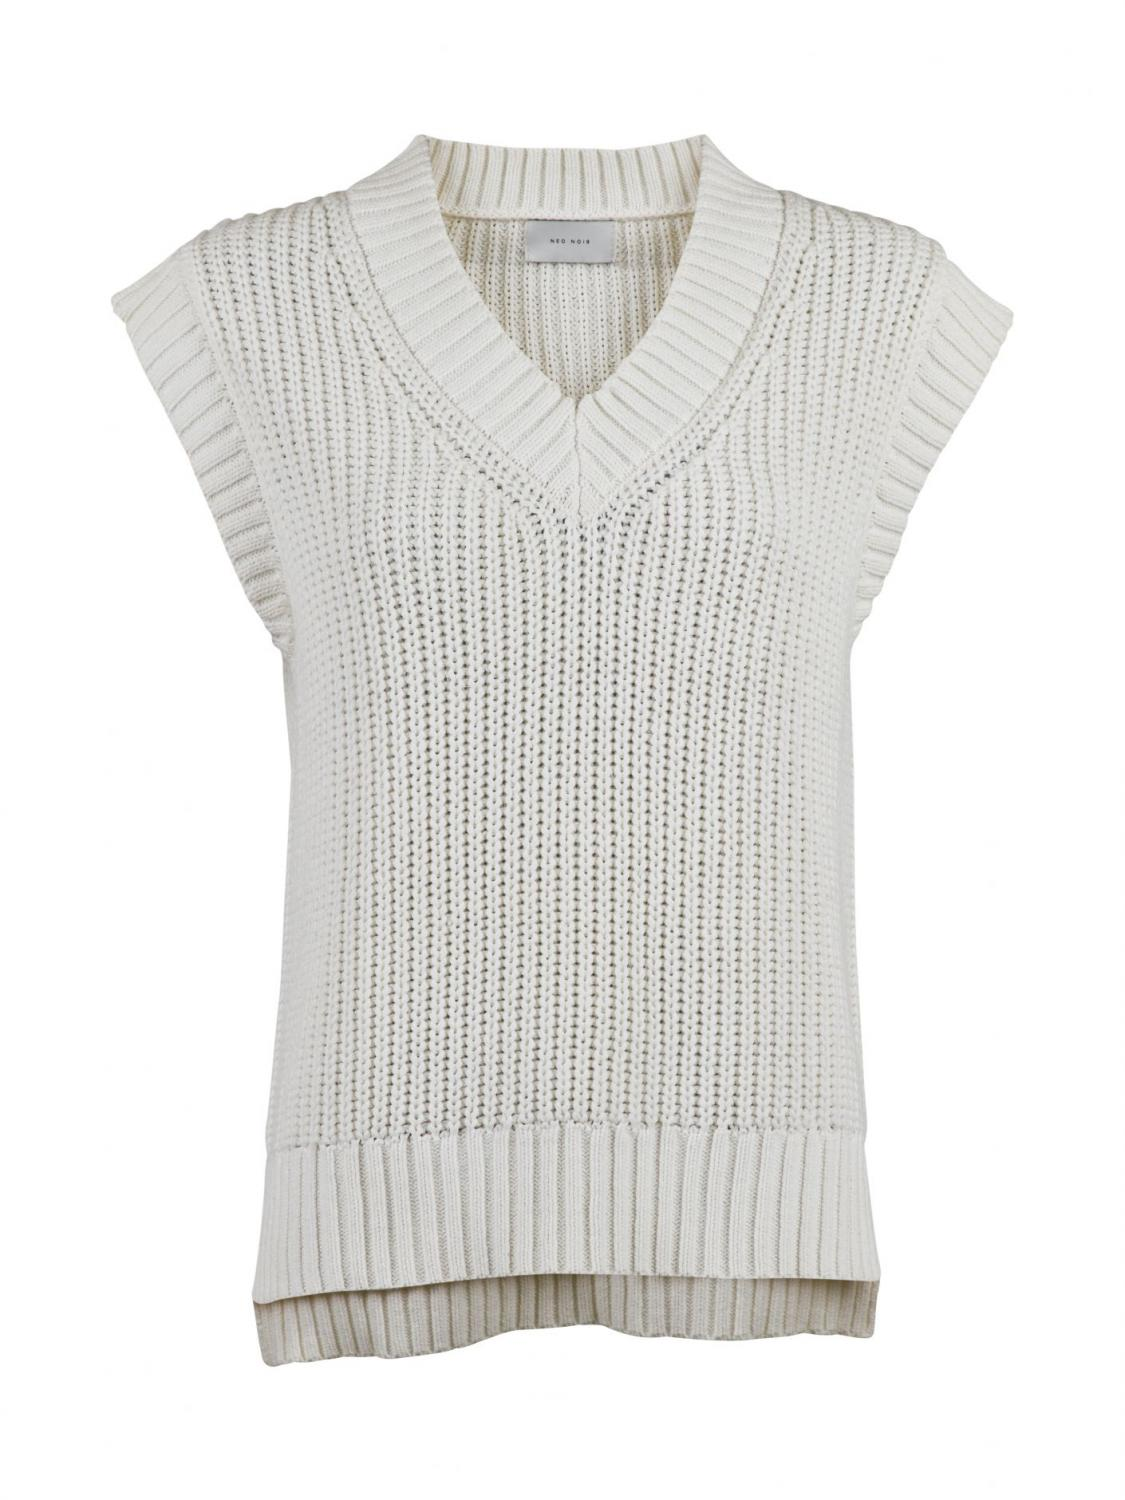 Kaylee Spring Knit Waistcoat Off White